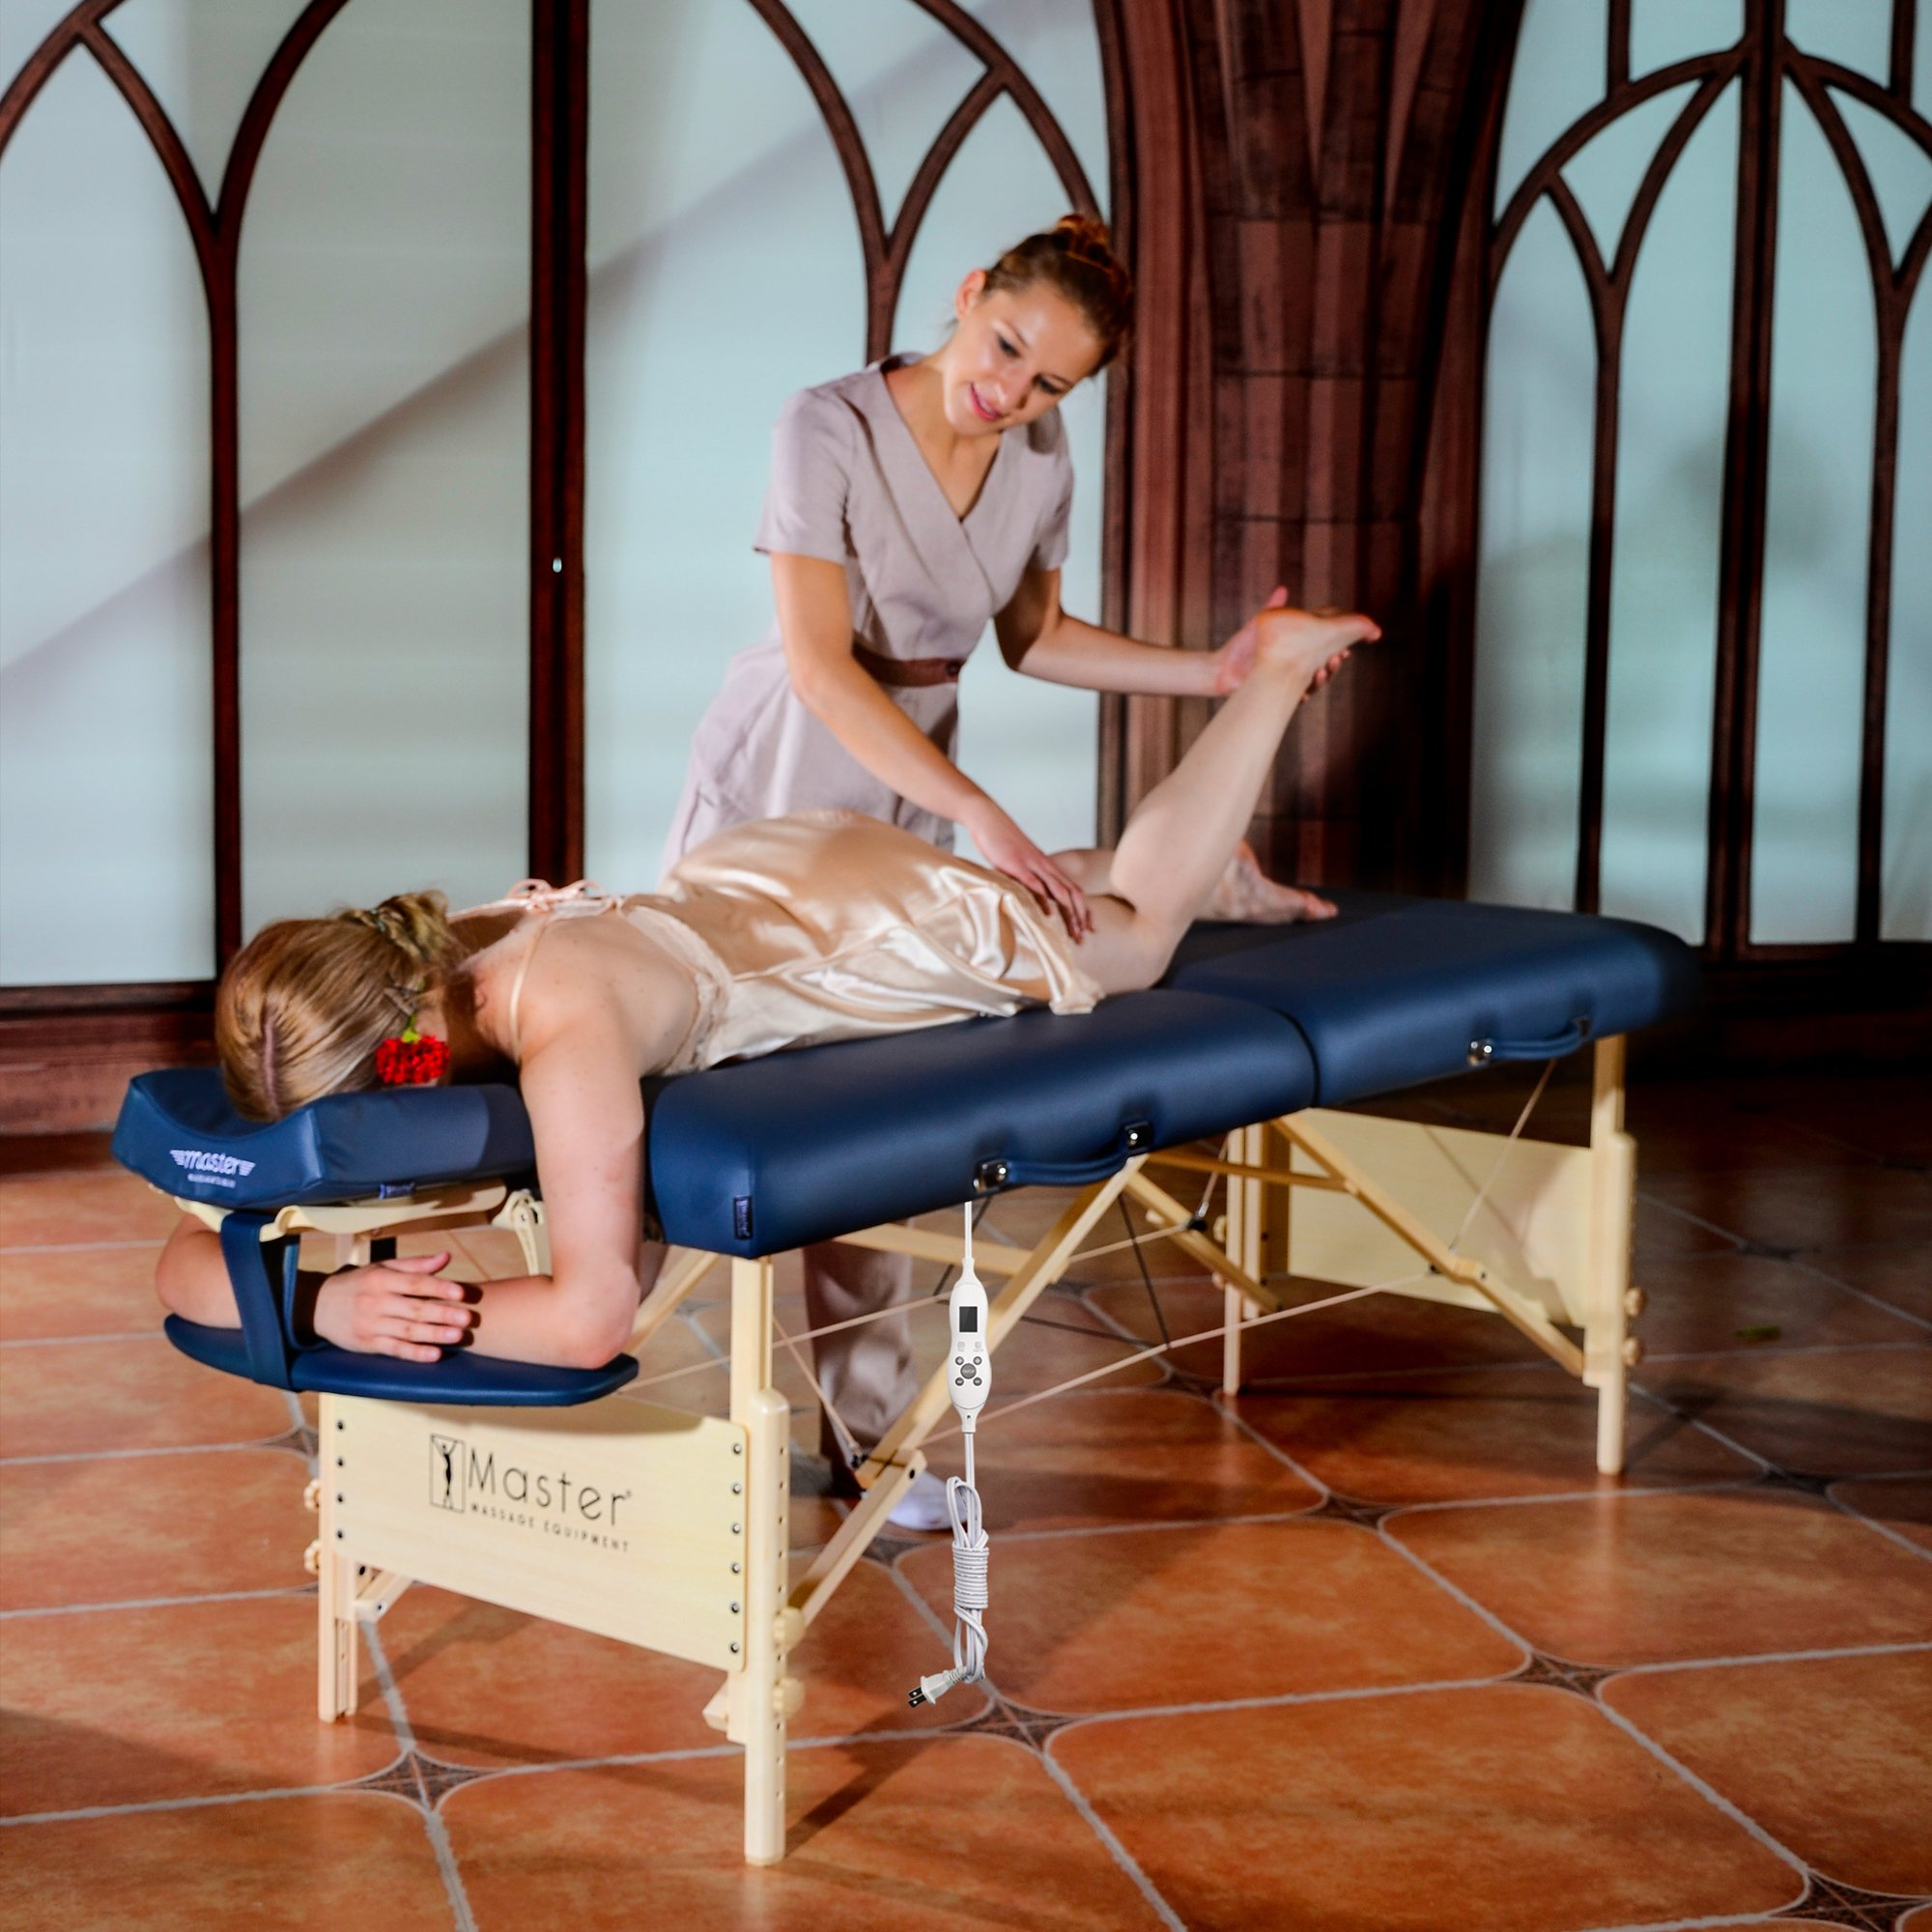 Master Massage 30'' Coronado Therma Top LX Portable Massage Table Package, Royal Blue by Master Massage (Image #3)